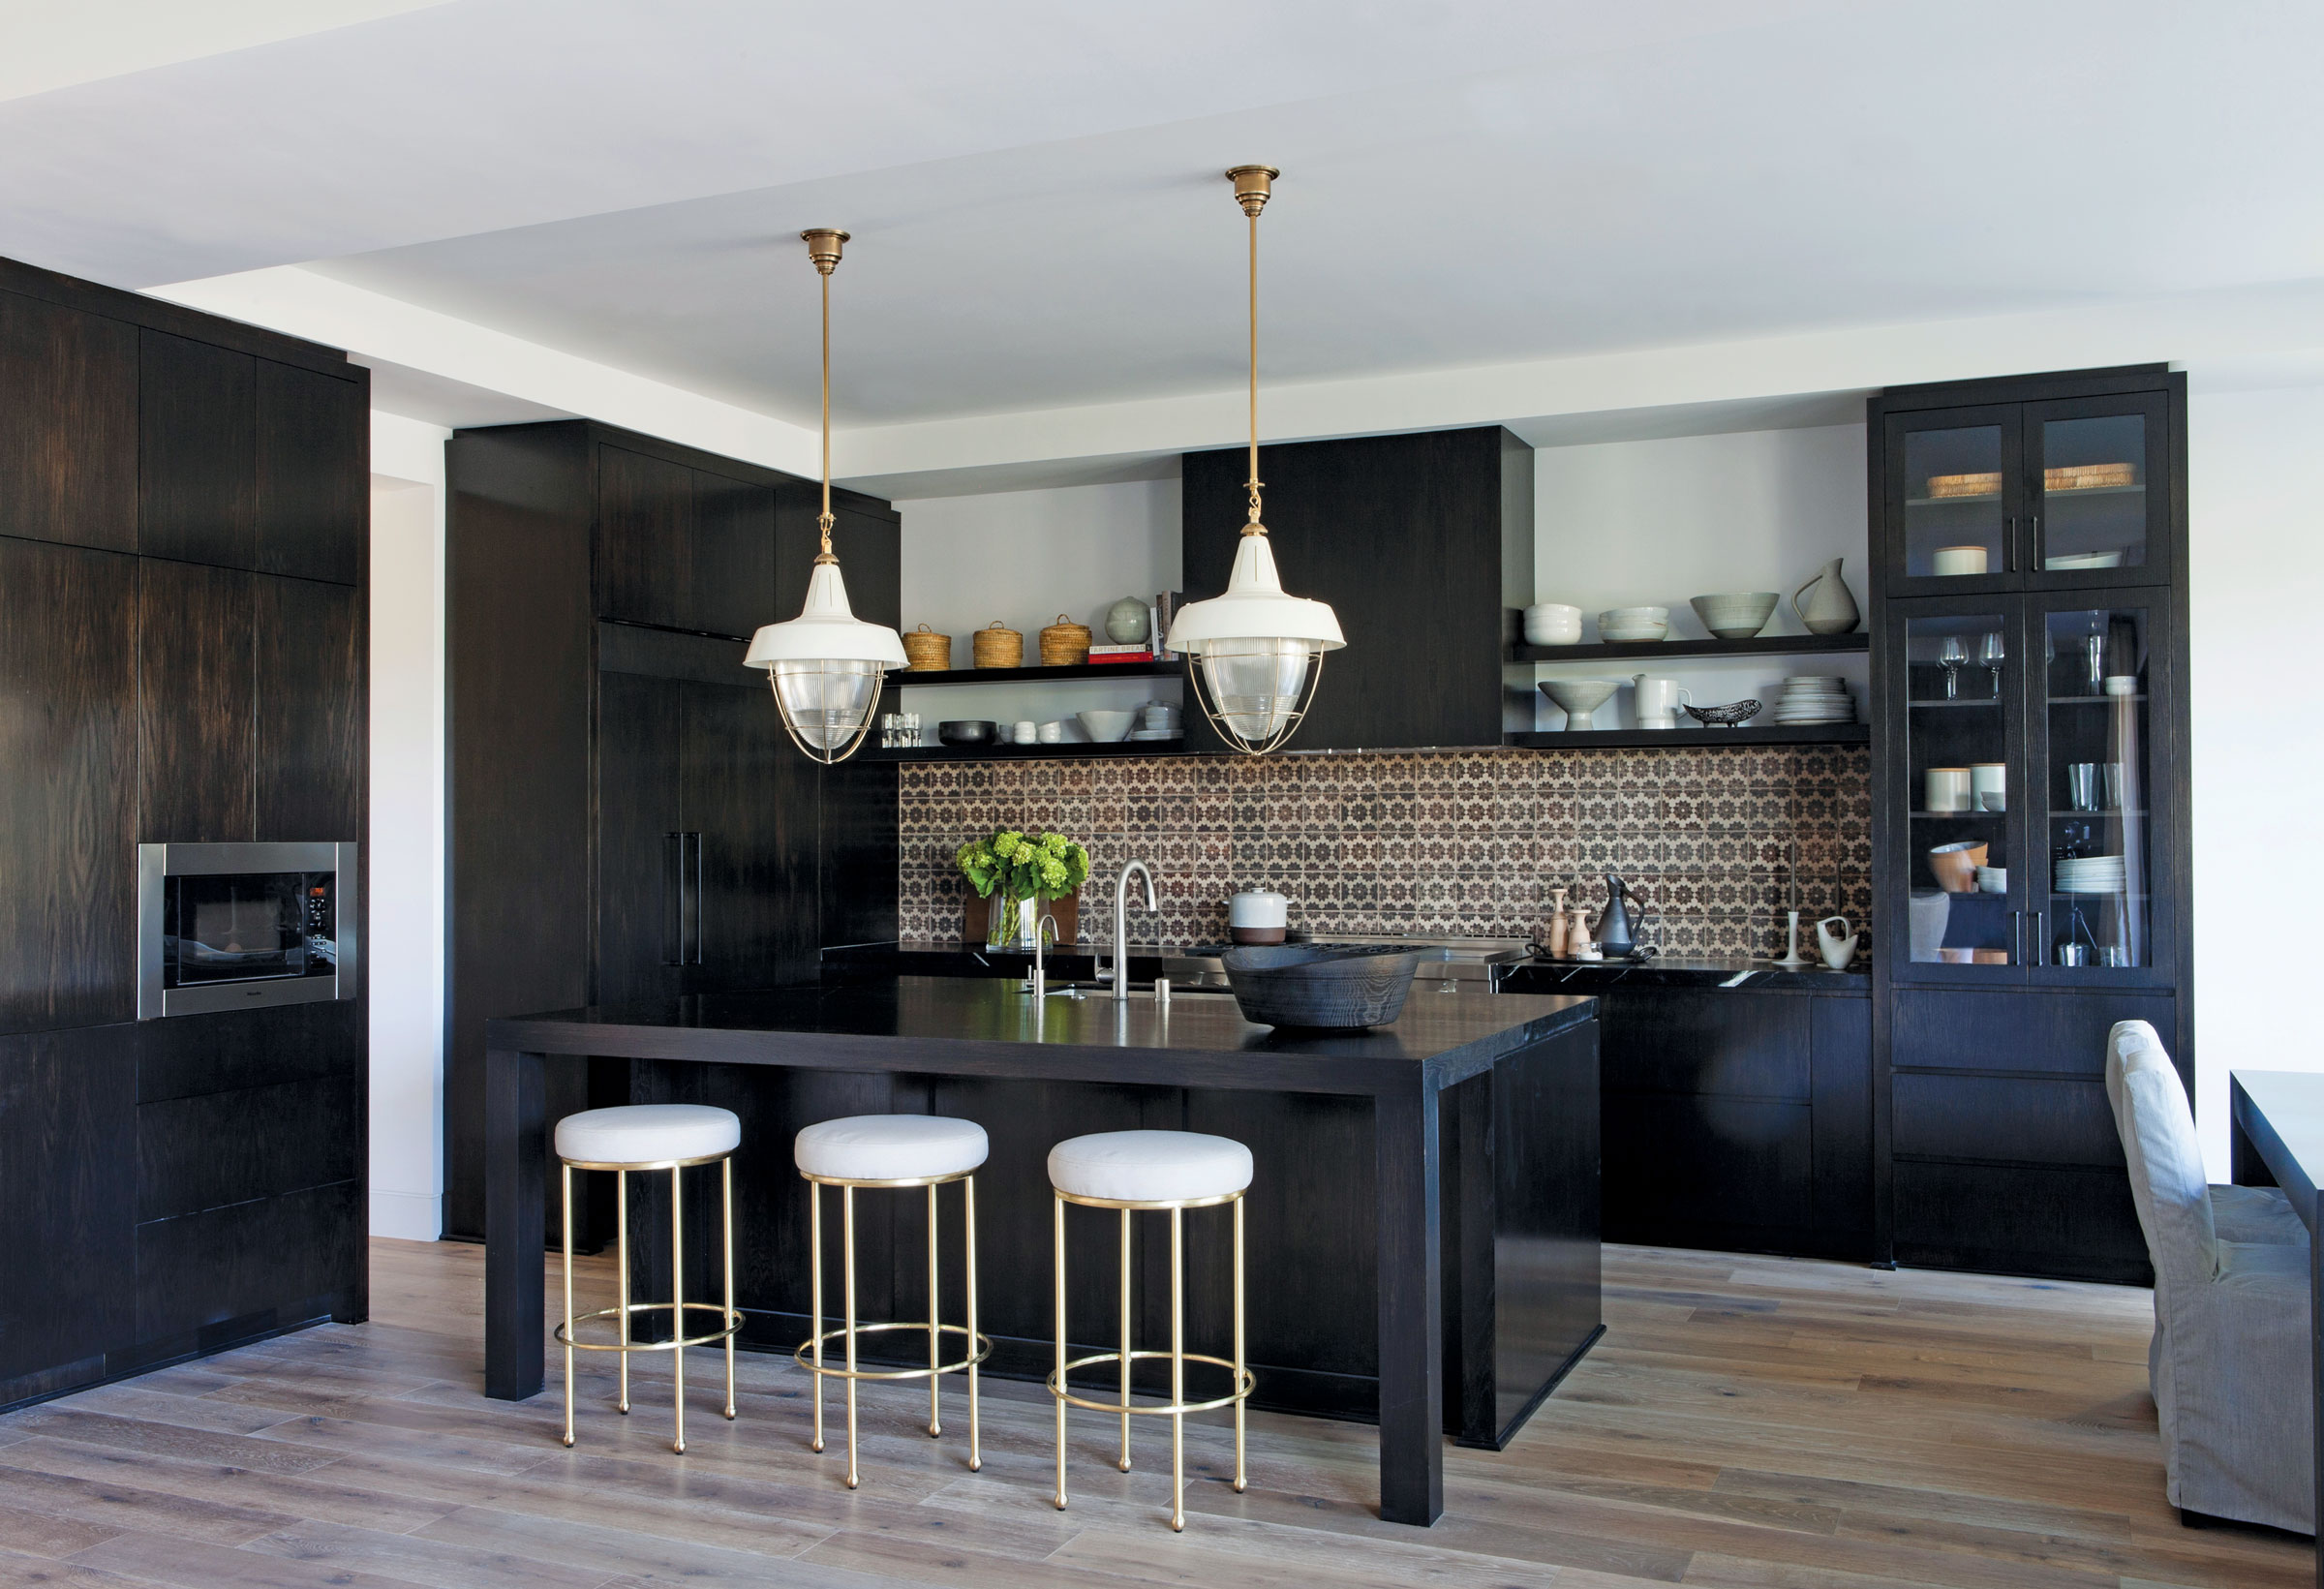 Modern Beach Glam Kitchen Cottage Style Decorating Renovating And Entertaining Ideas For Indoors And Out